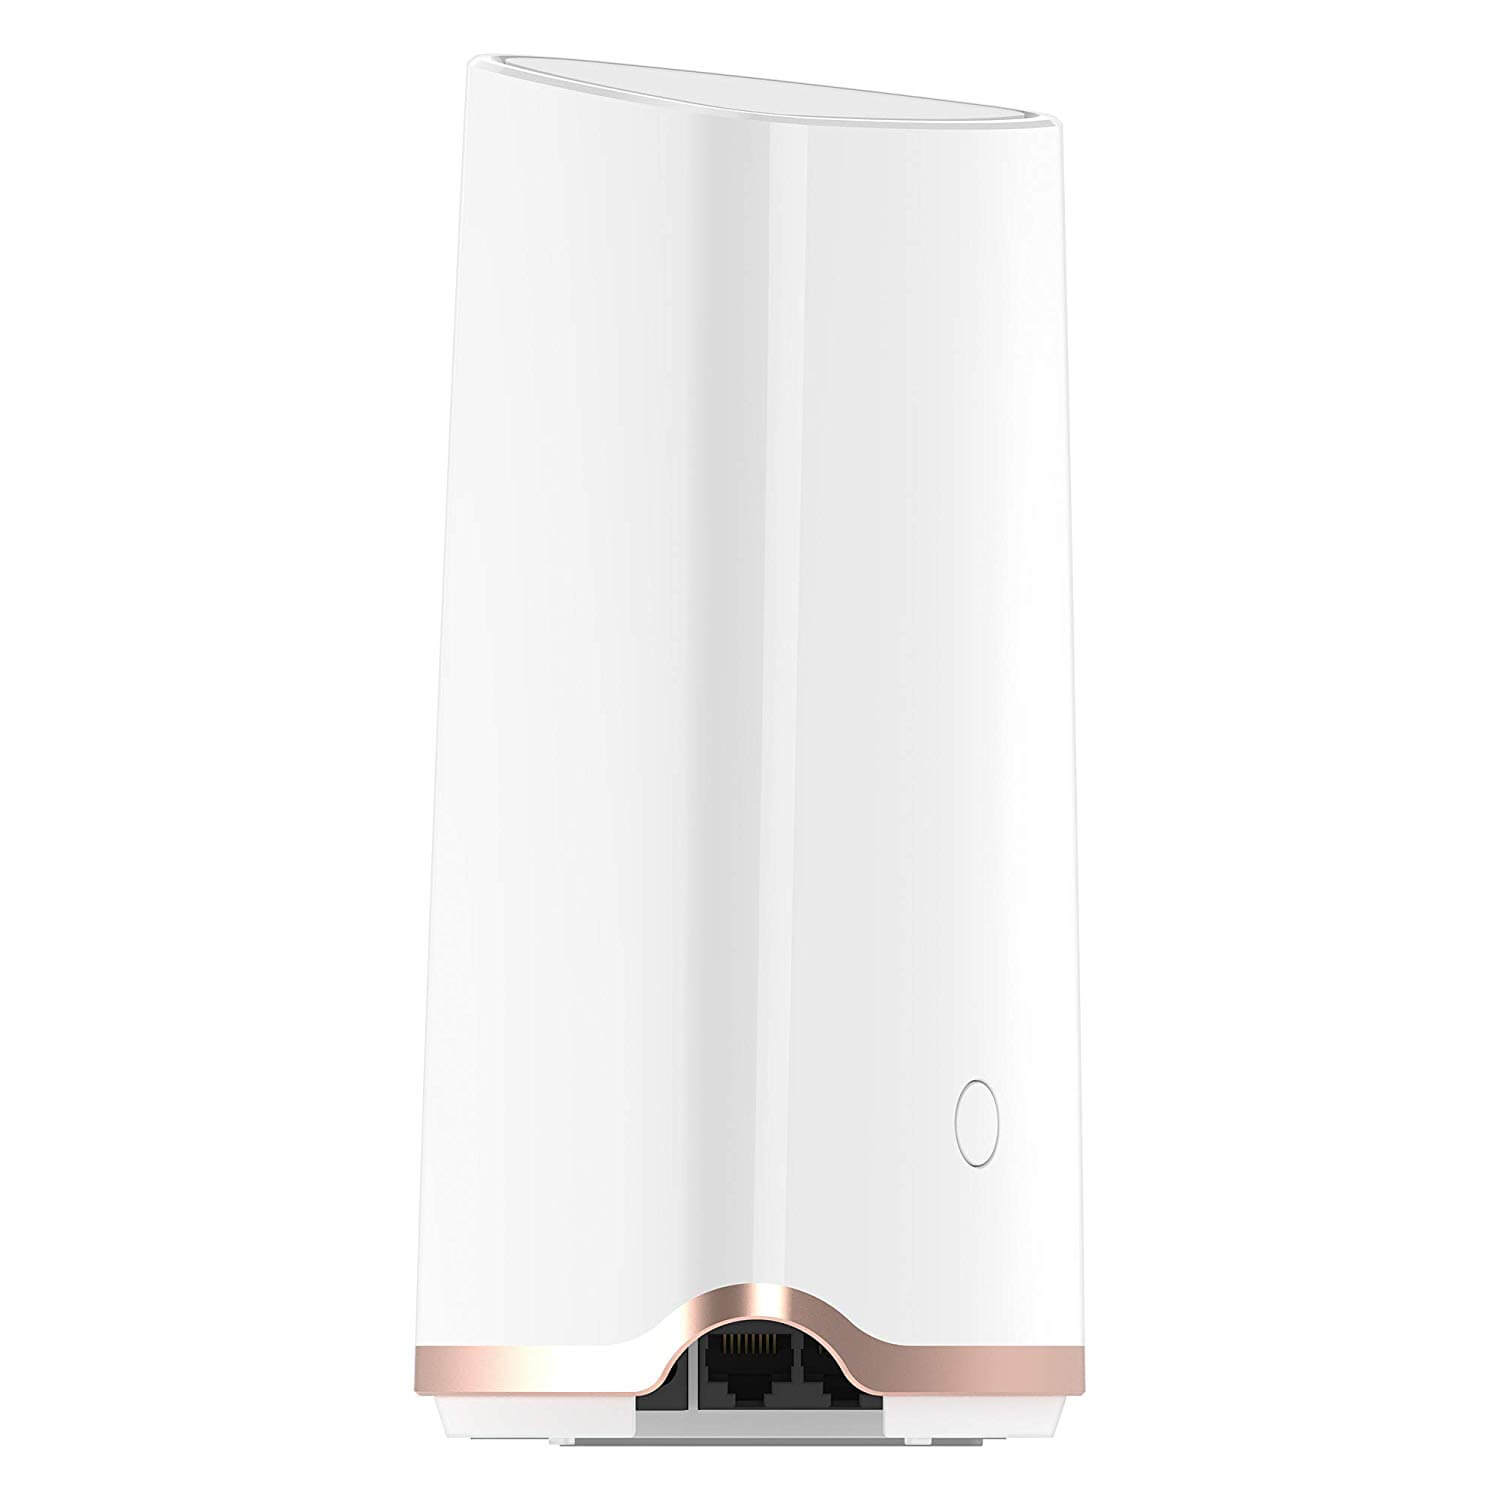 D-Link Covr 2202 AC2200 Tri-Band Mesh Wireless Router